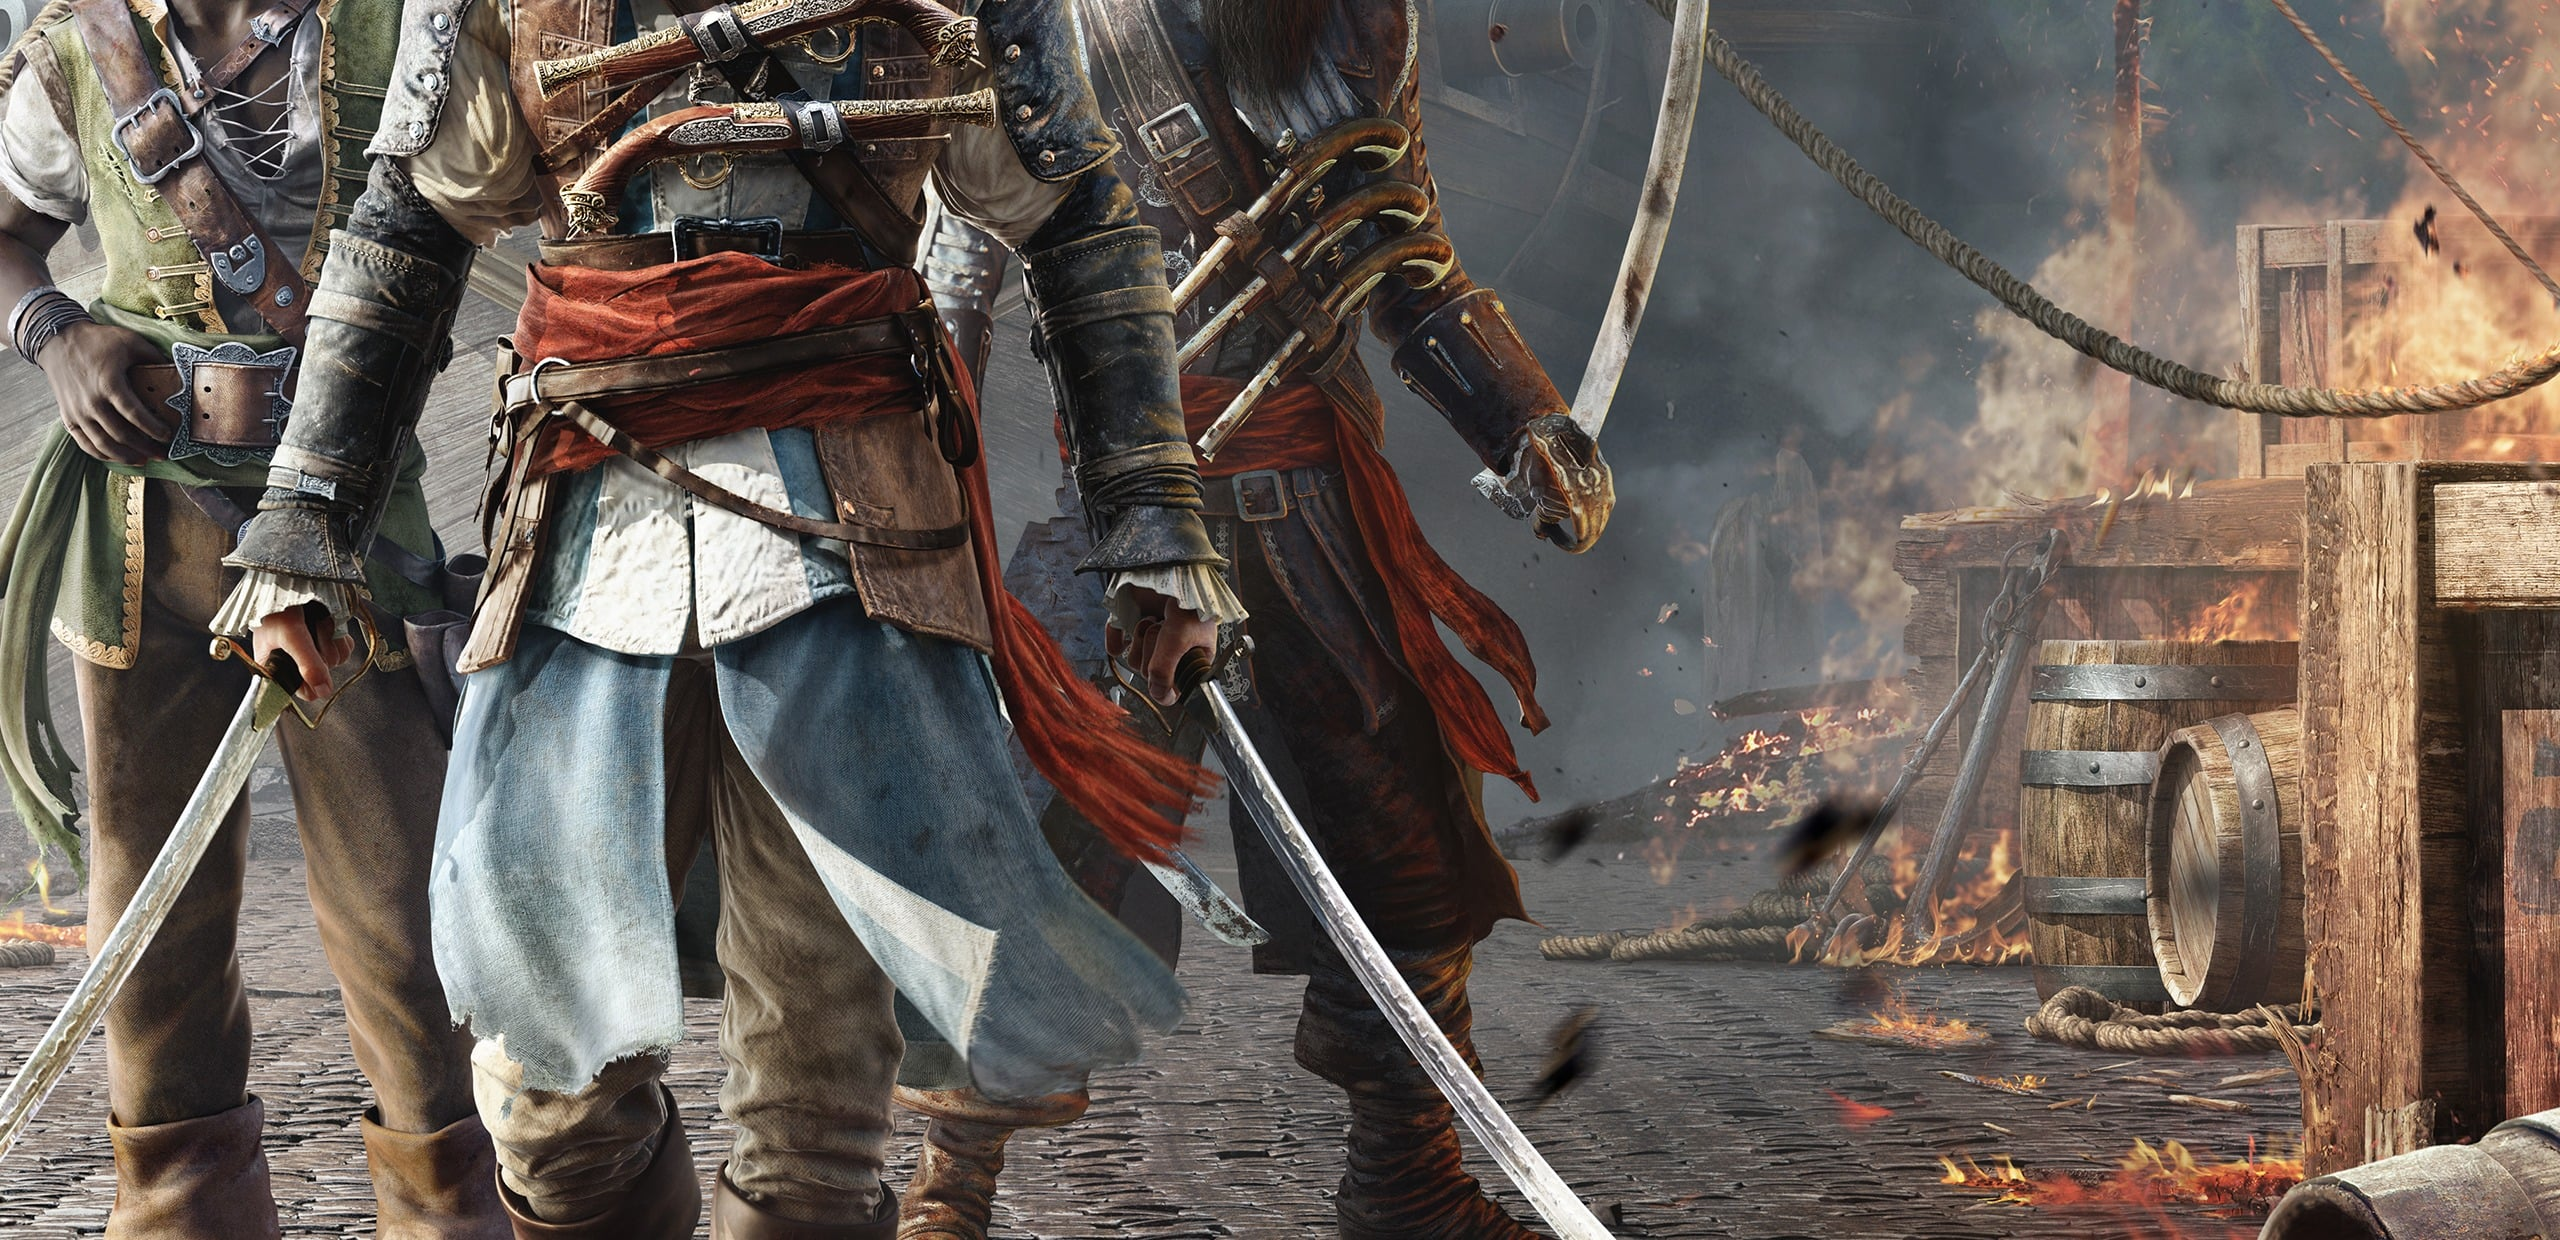 AT_ASSASINS_CREED_Black_Flag_detail_img_05